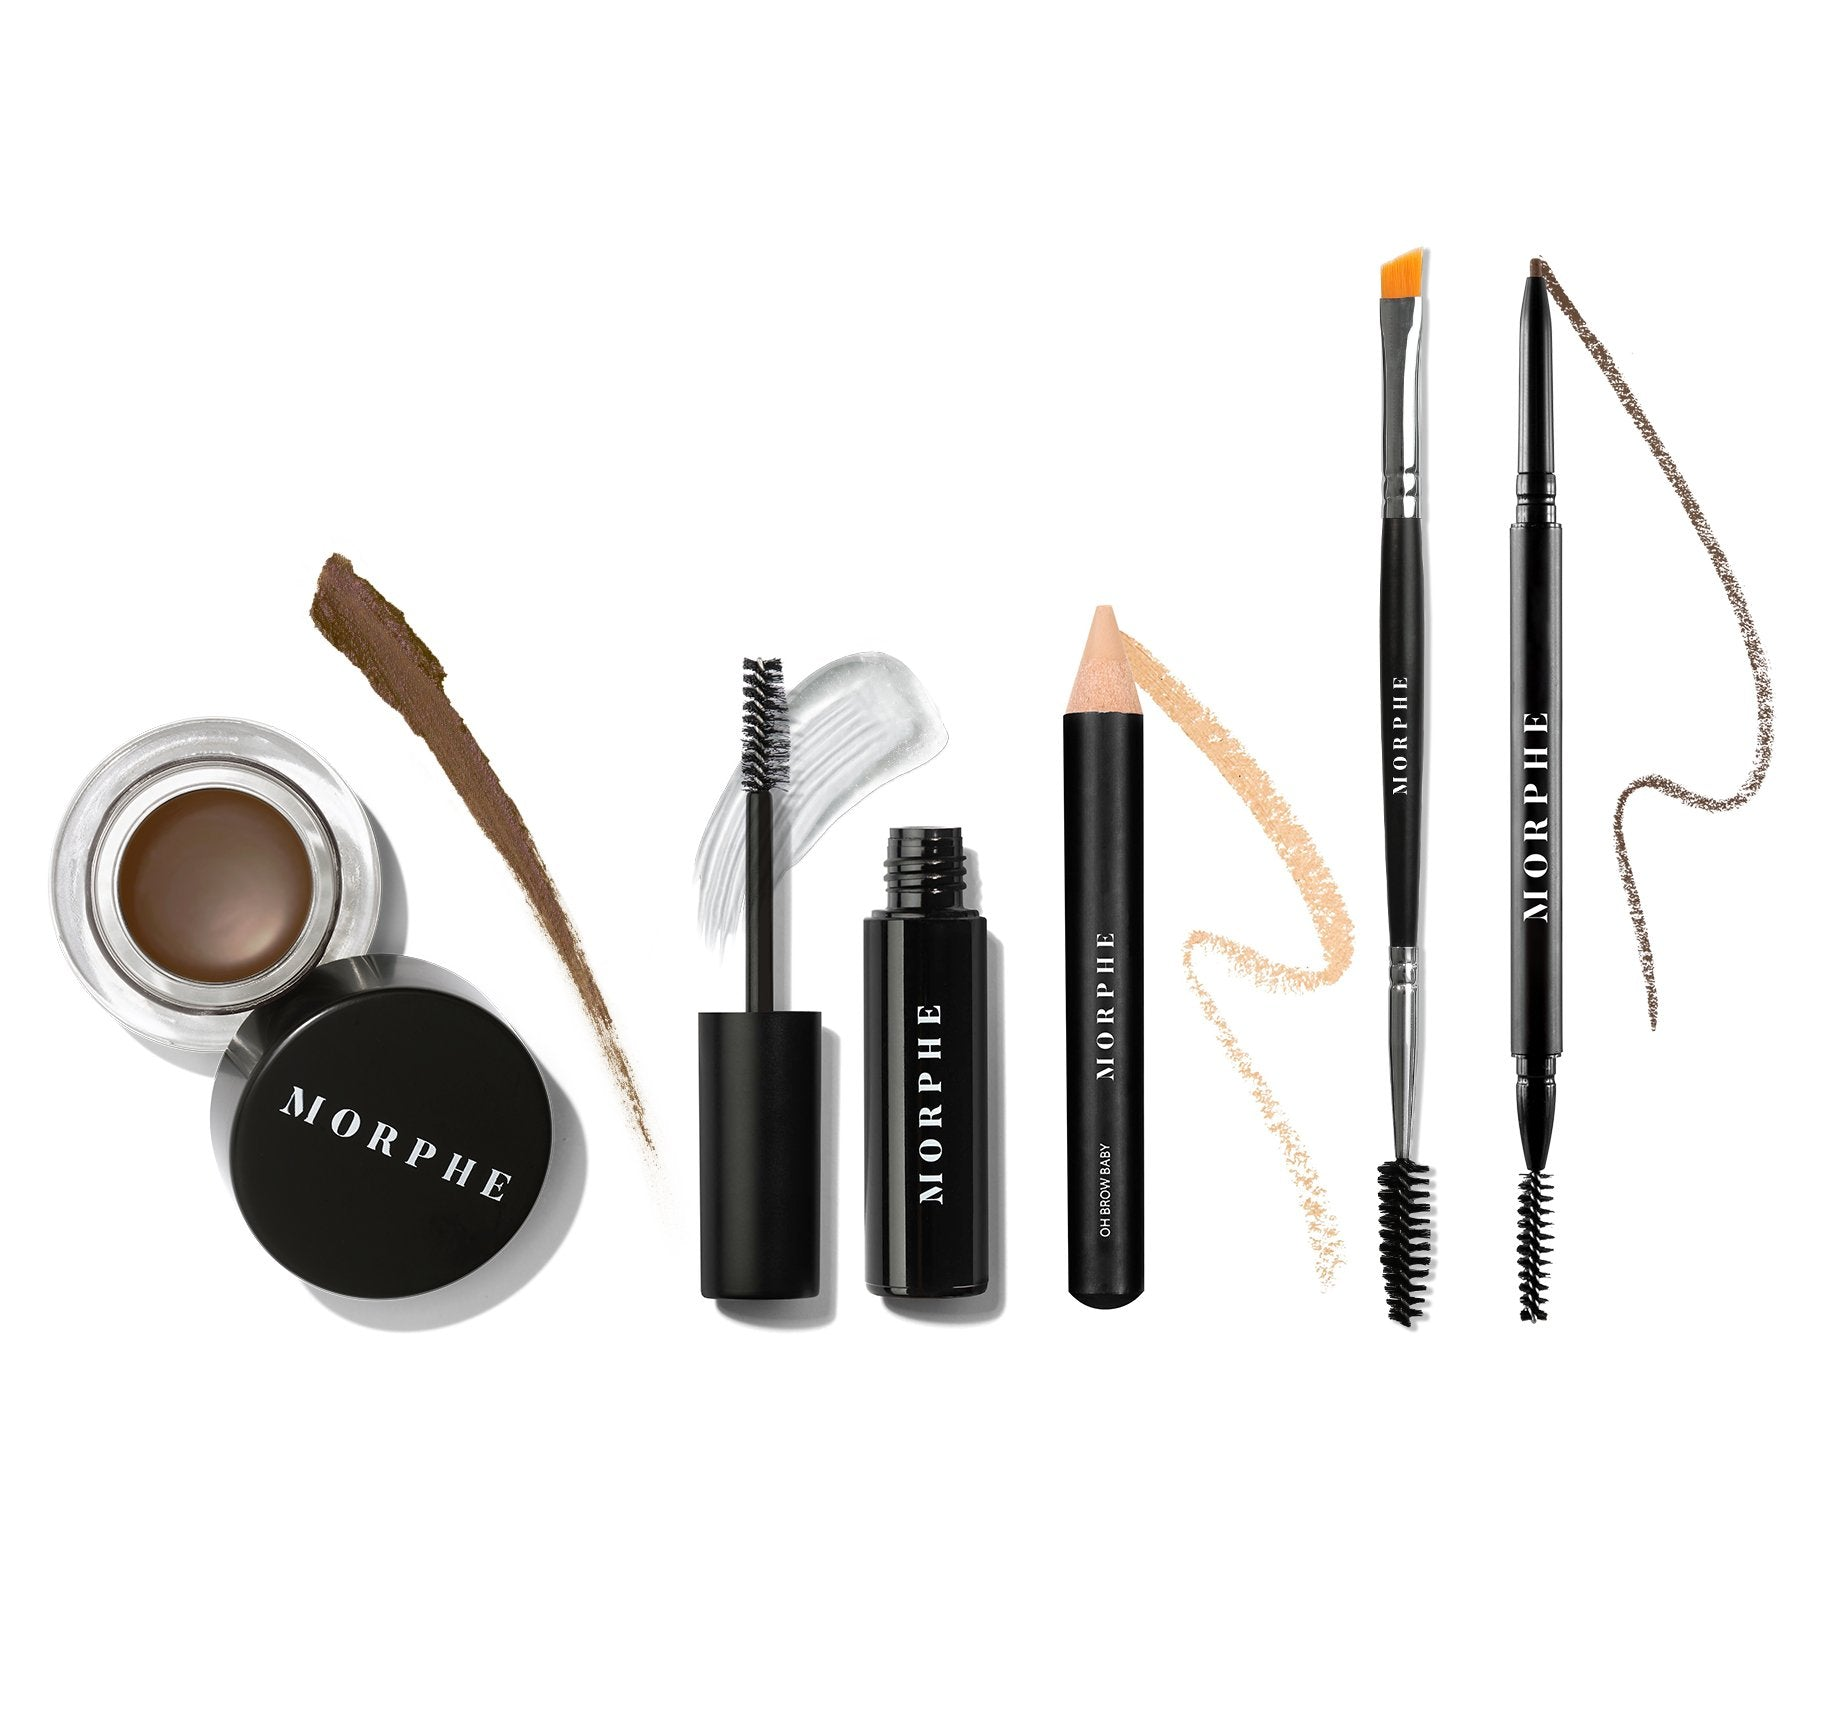 ARCH OBSESSIONS BROW KIT - LATTE, view larger image